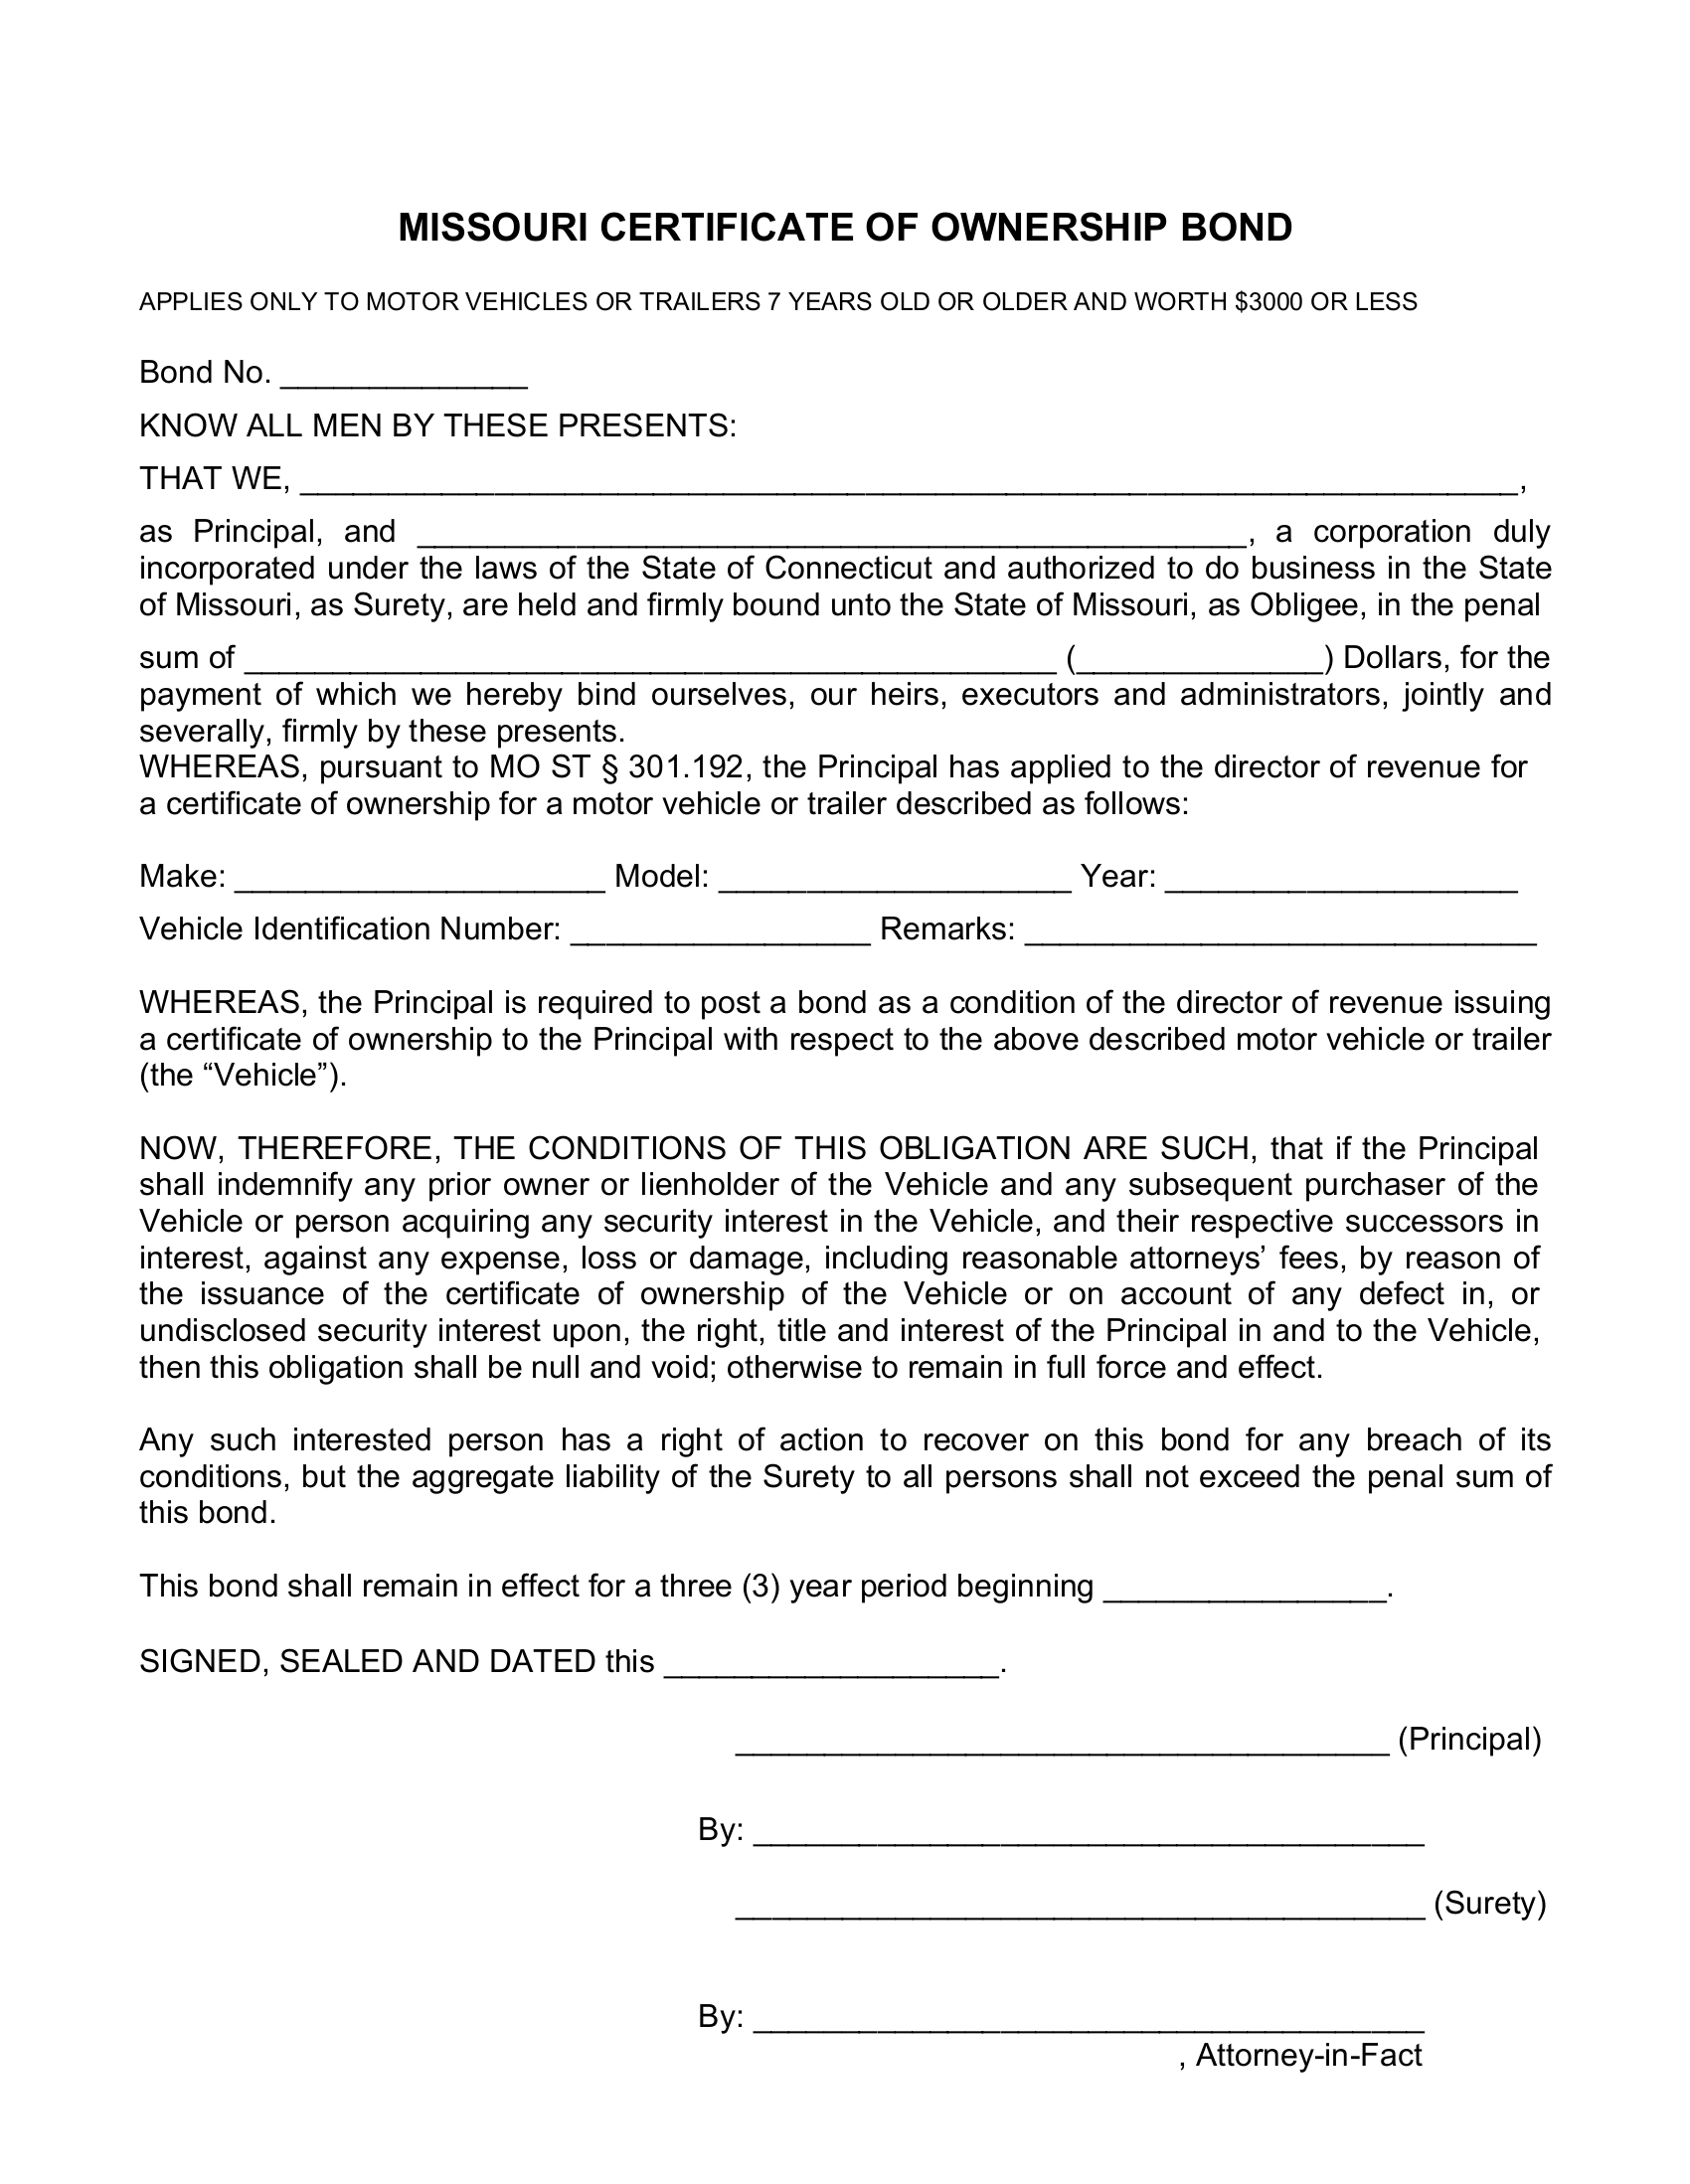 Certificate of Ownership Title Bond sample image